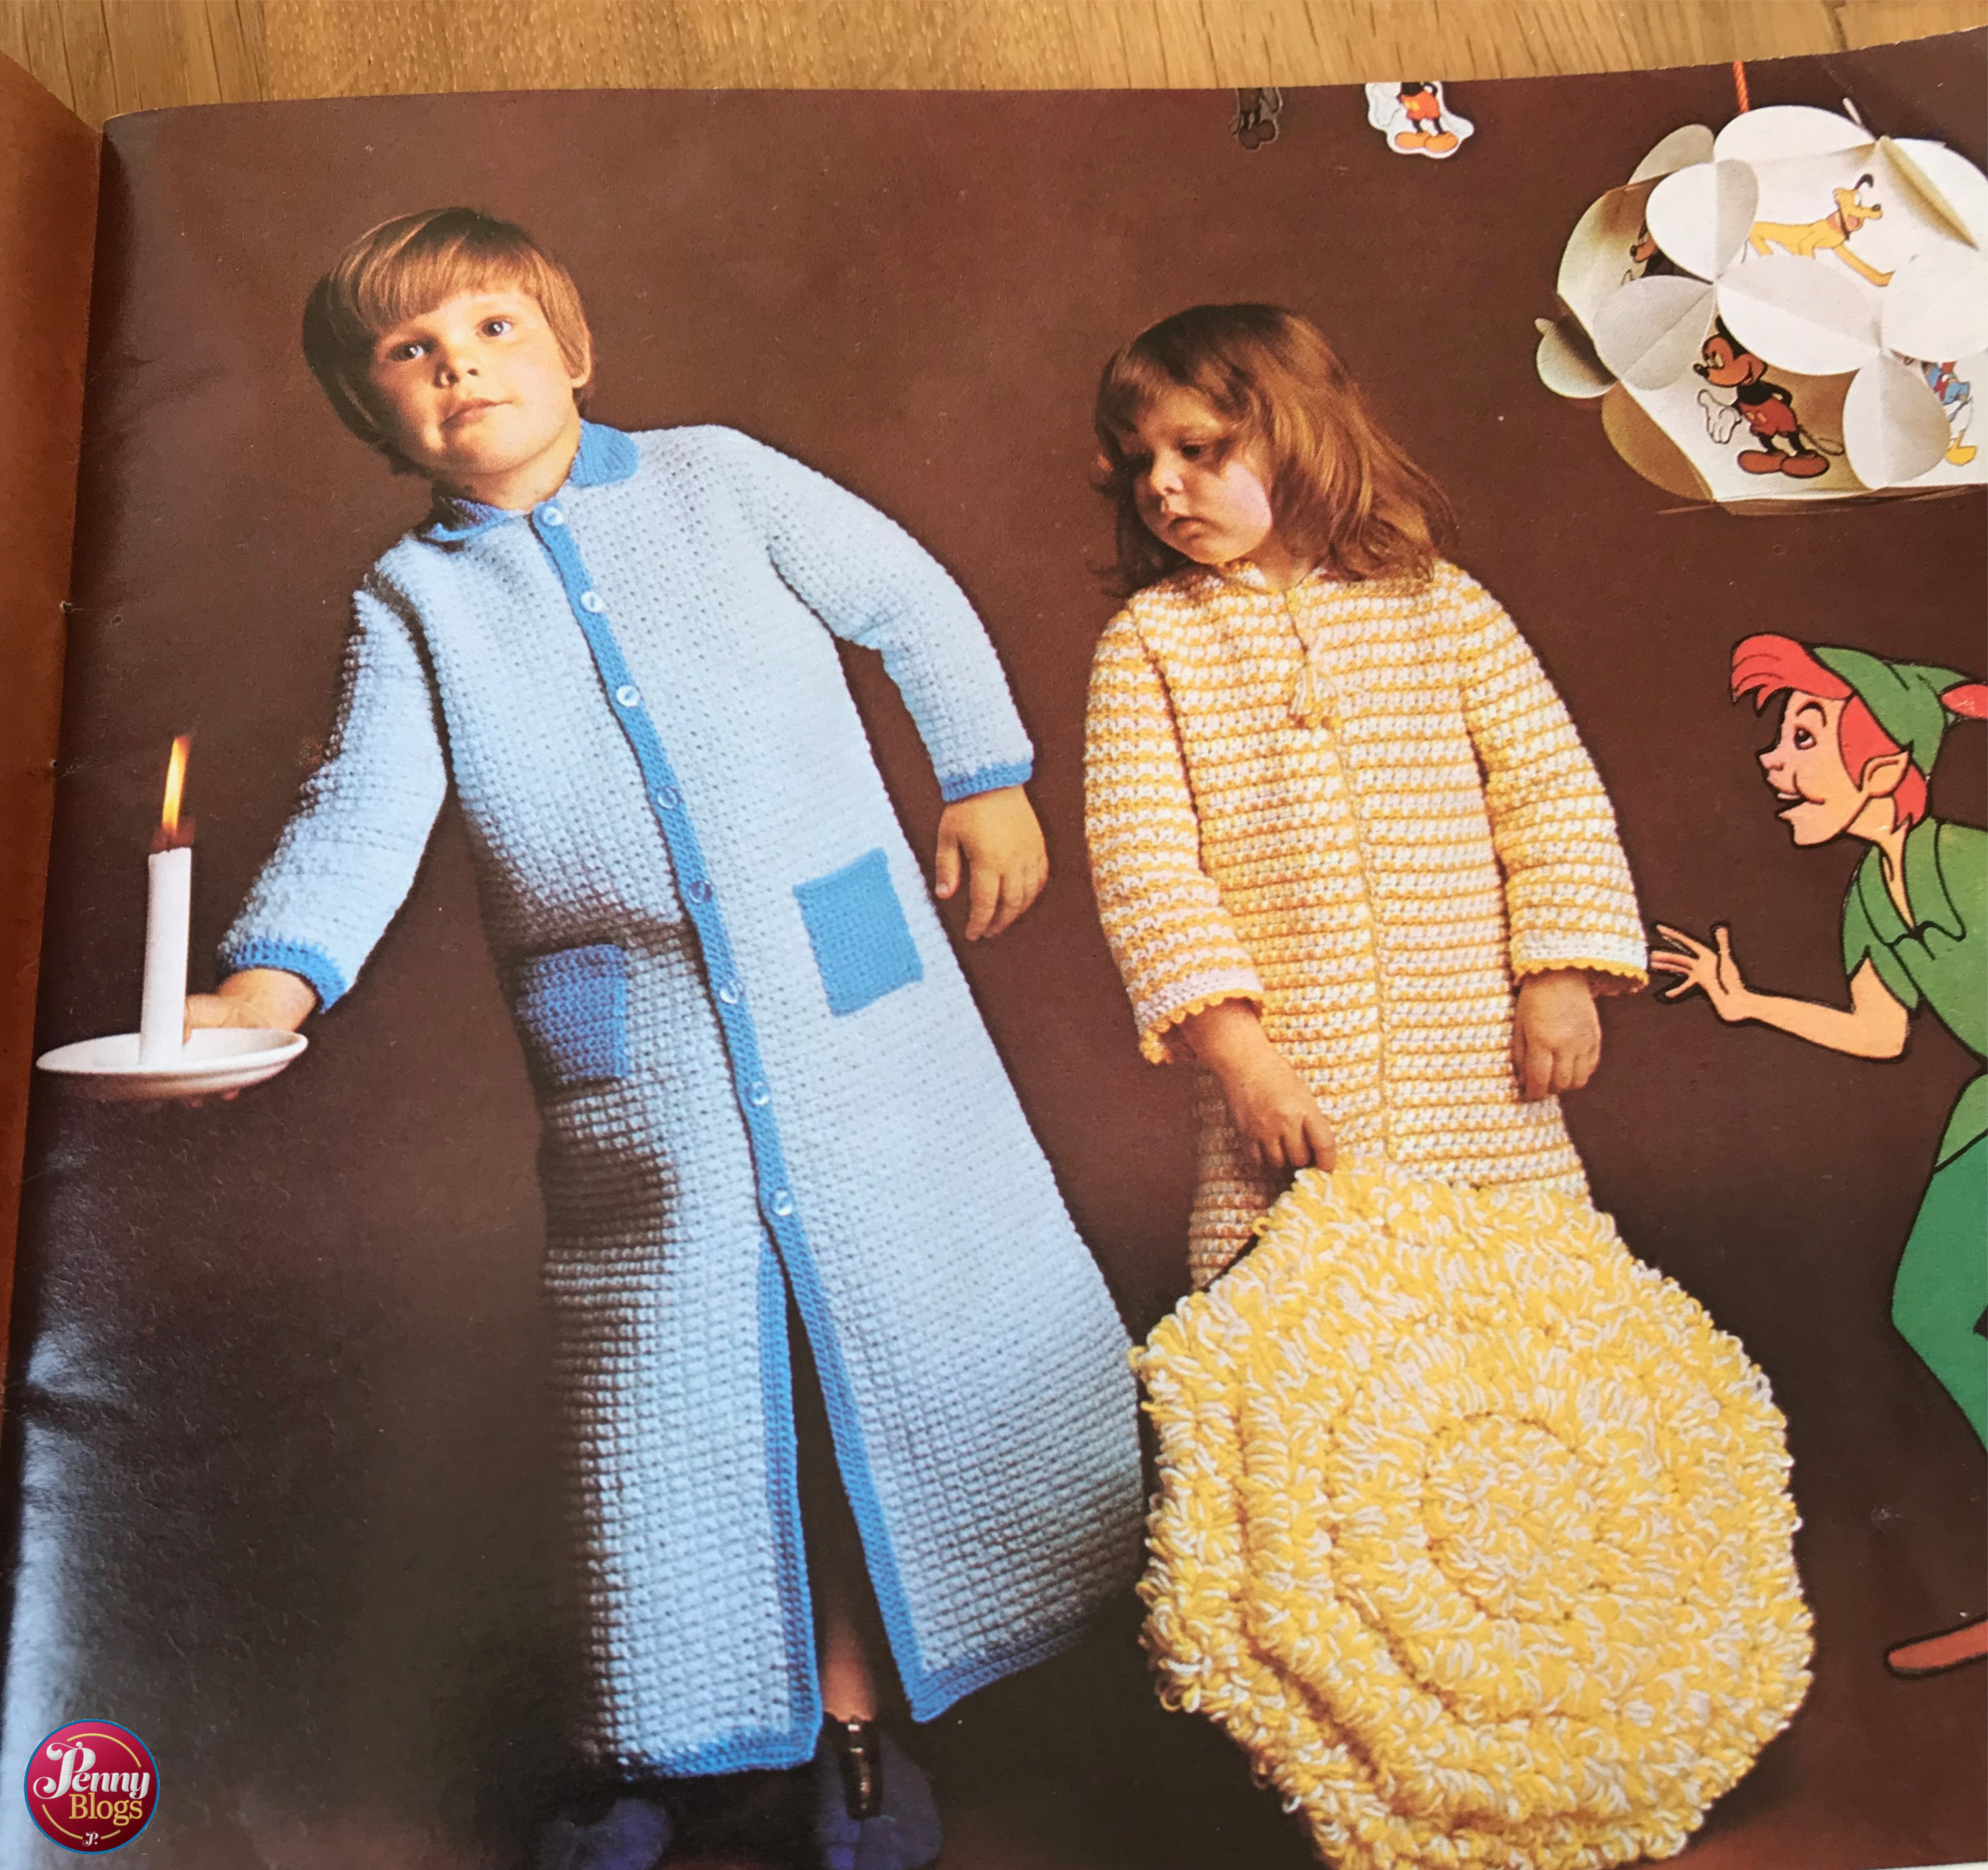 Knitting Archives - Penny Blogs